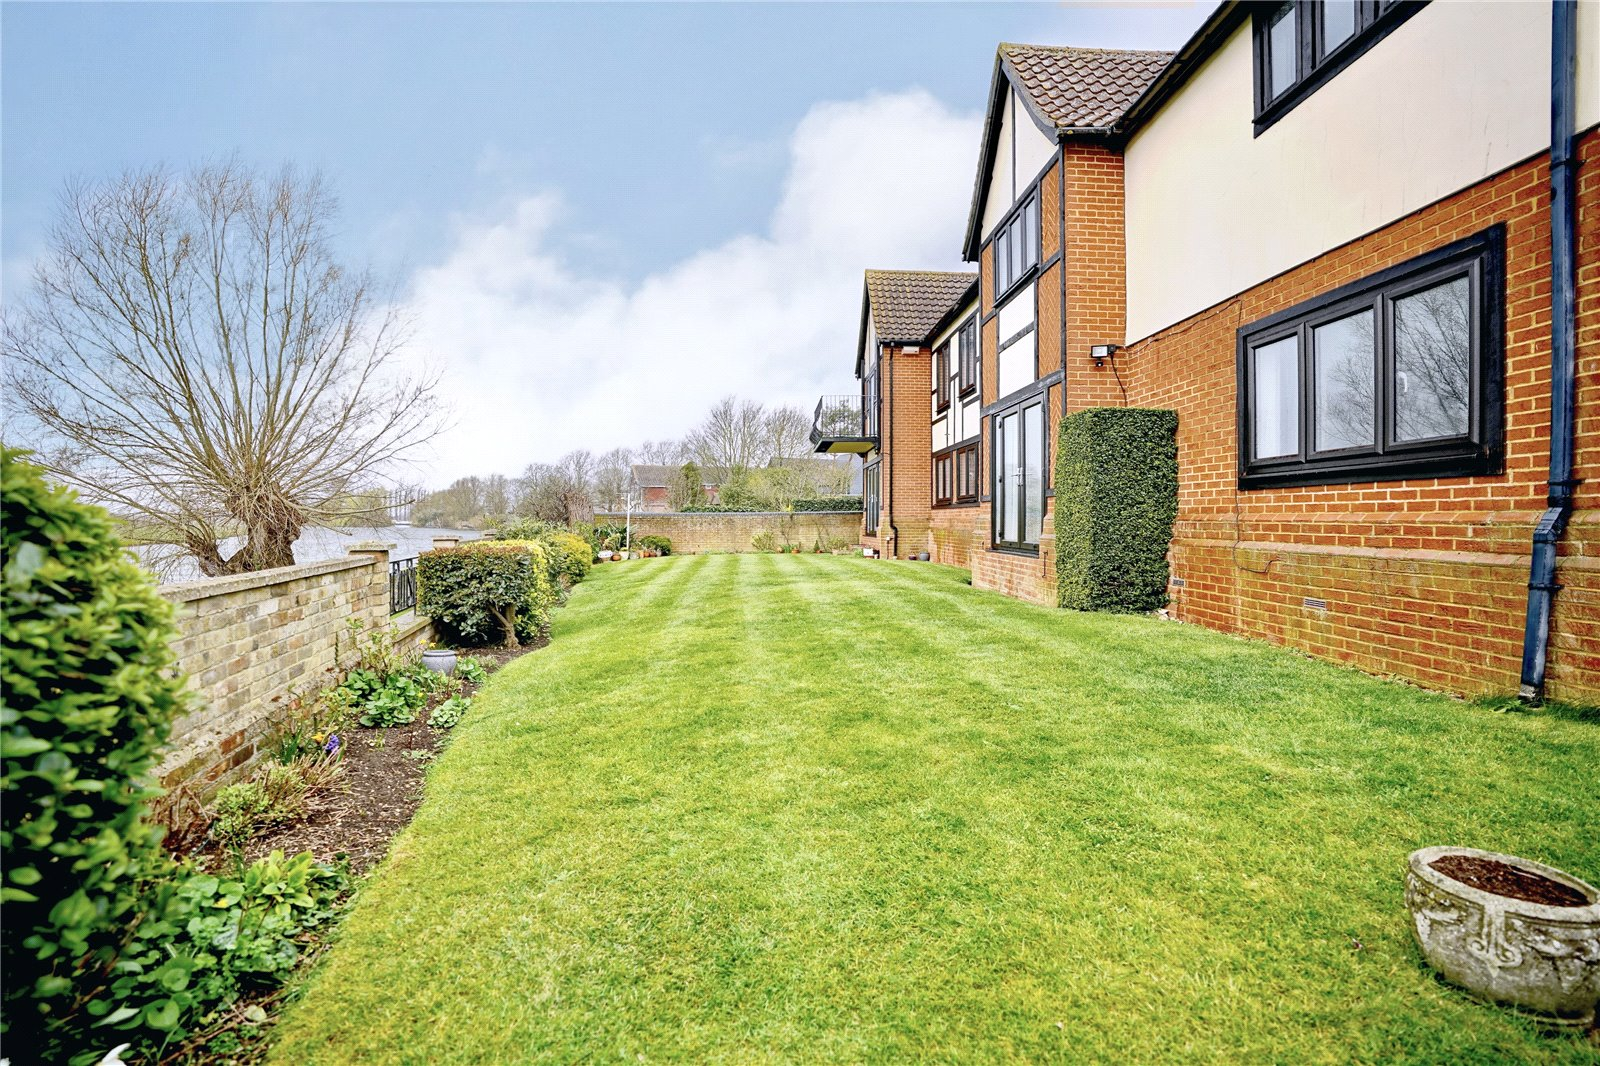 2 bed apartment for sale in Earith, PE28 3PP  - Property Image 13